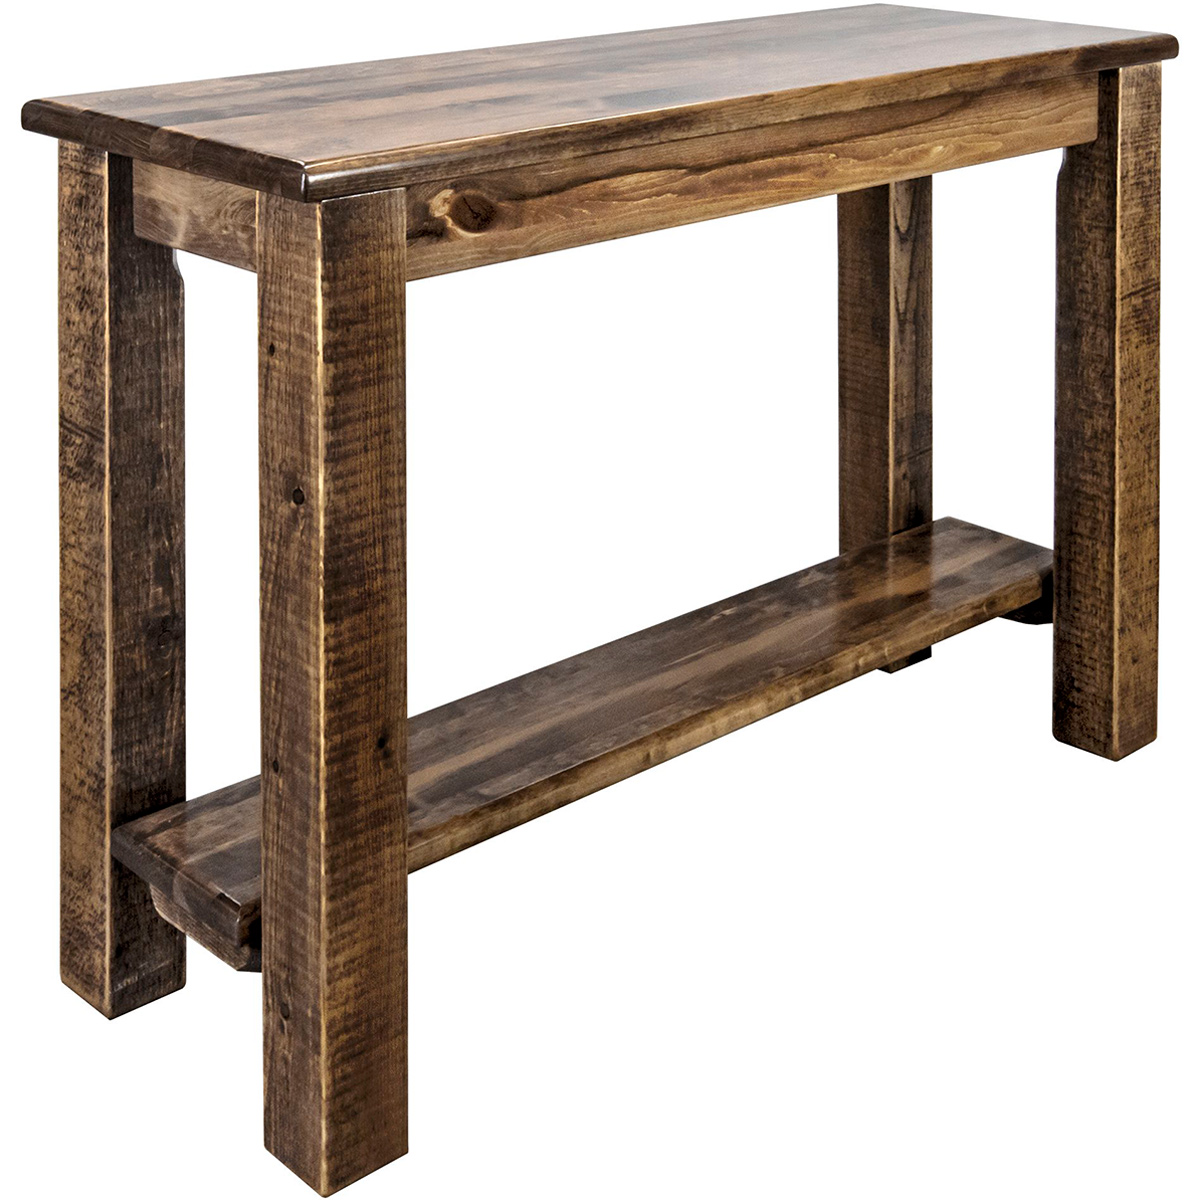 Ranchman's Console Table with Shelf, Stain & Clear Lacquer Finish